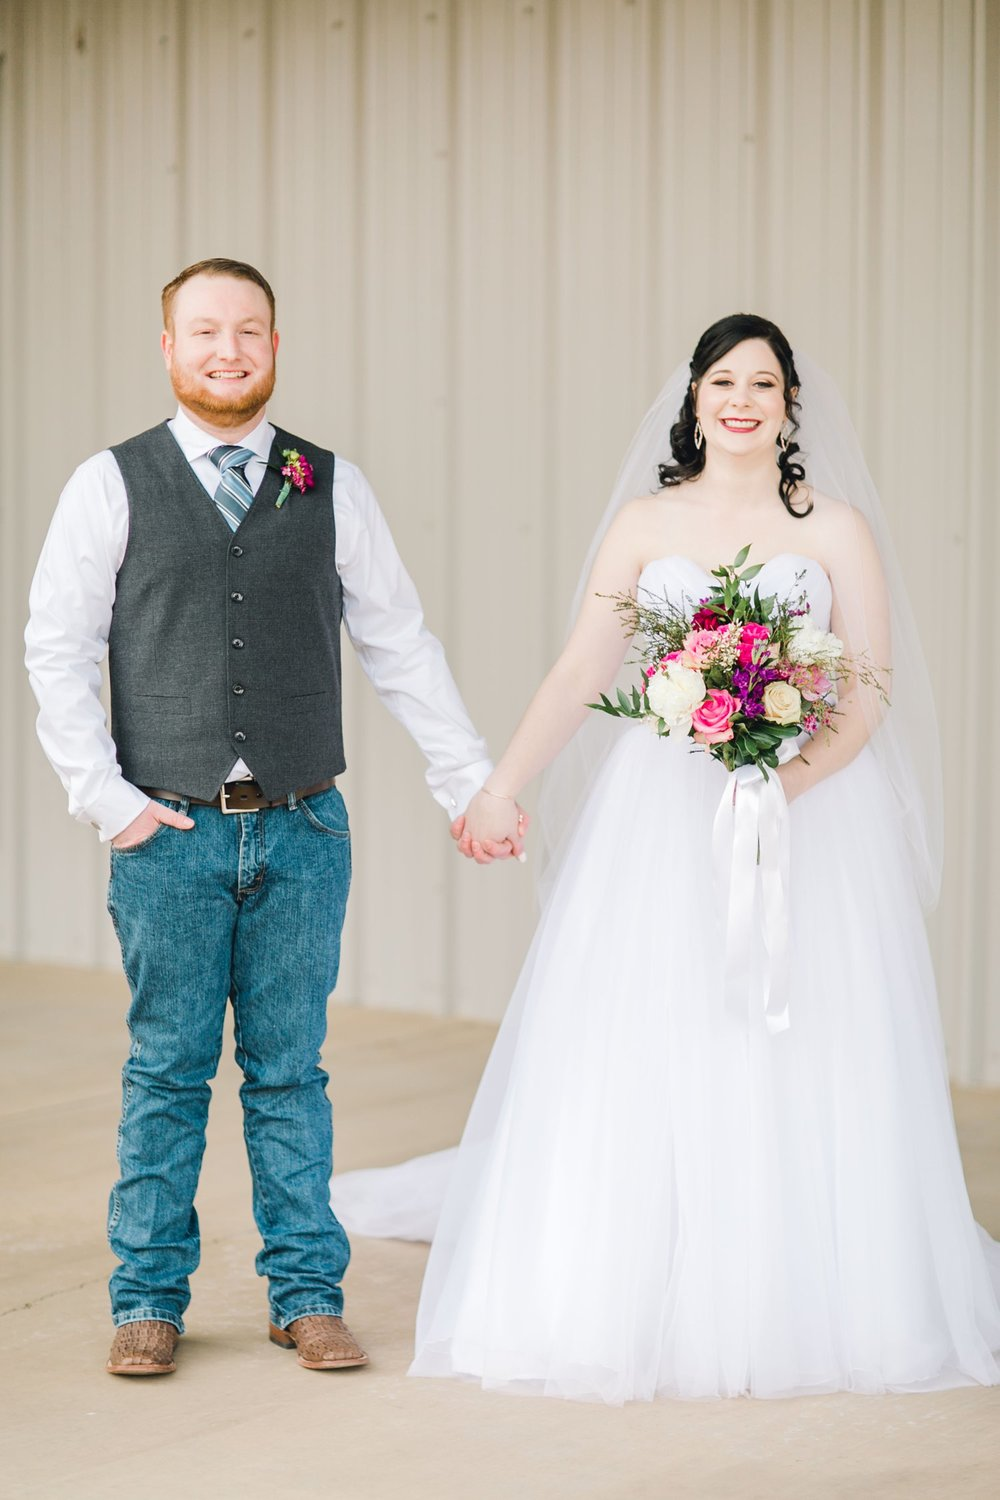 Autumn-Oaks-Events-Morgan-Andy-Lane-Wedding-Lubbock-Photography__0030.jpg